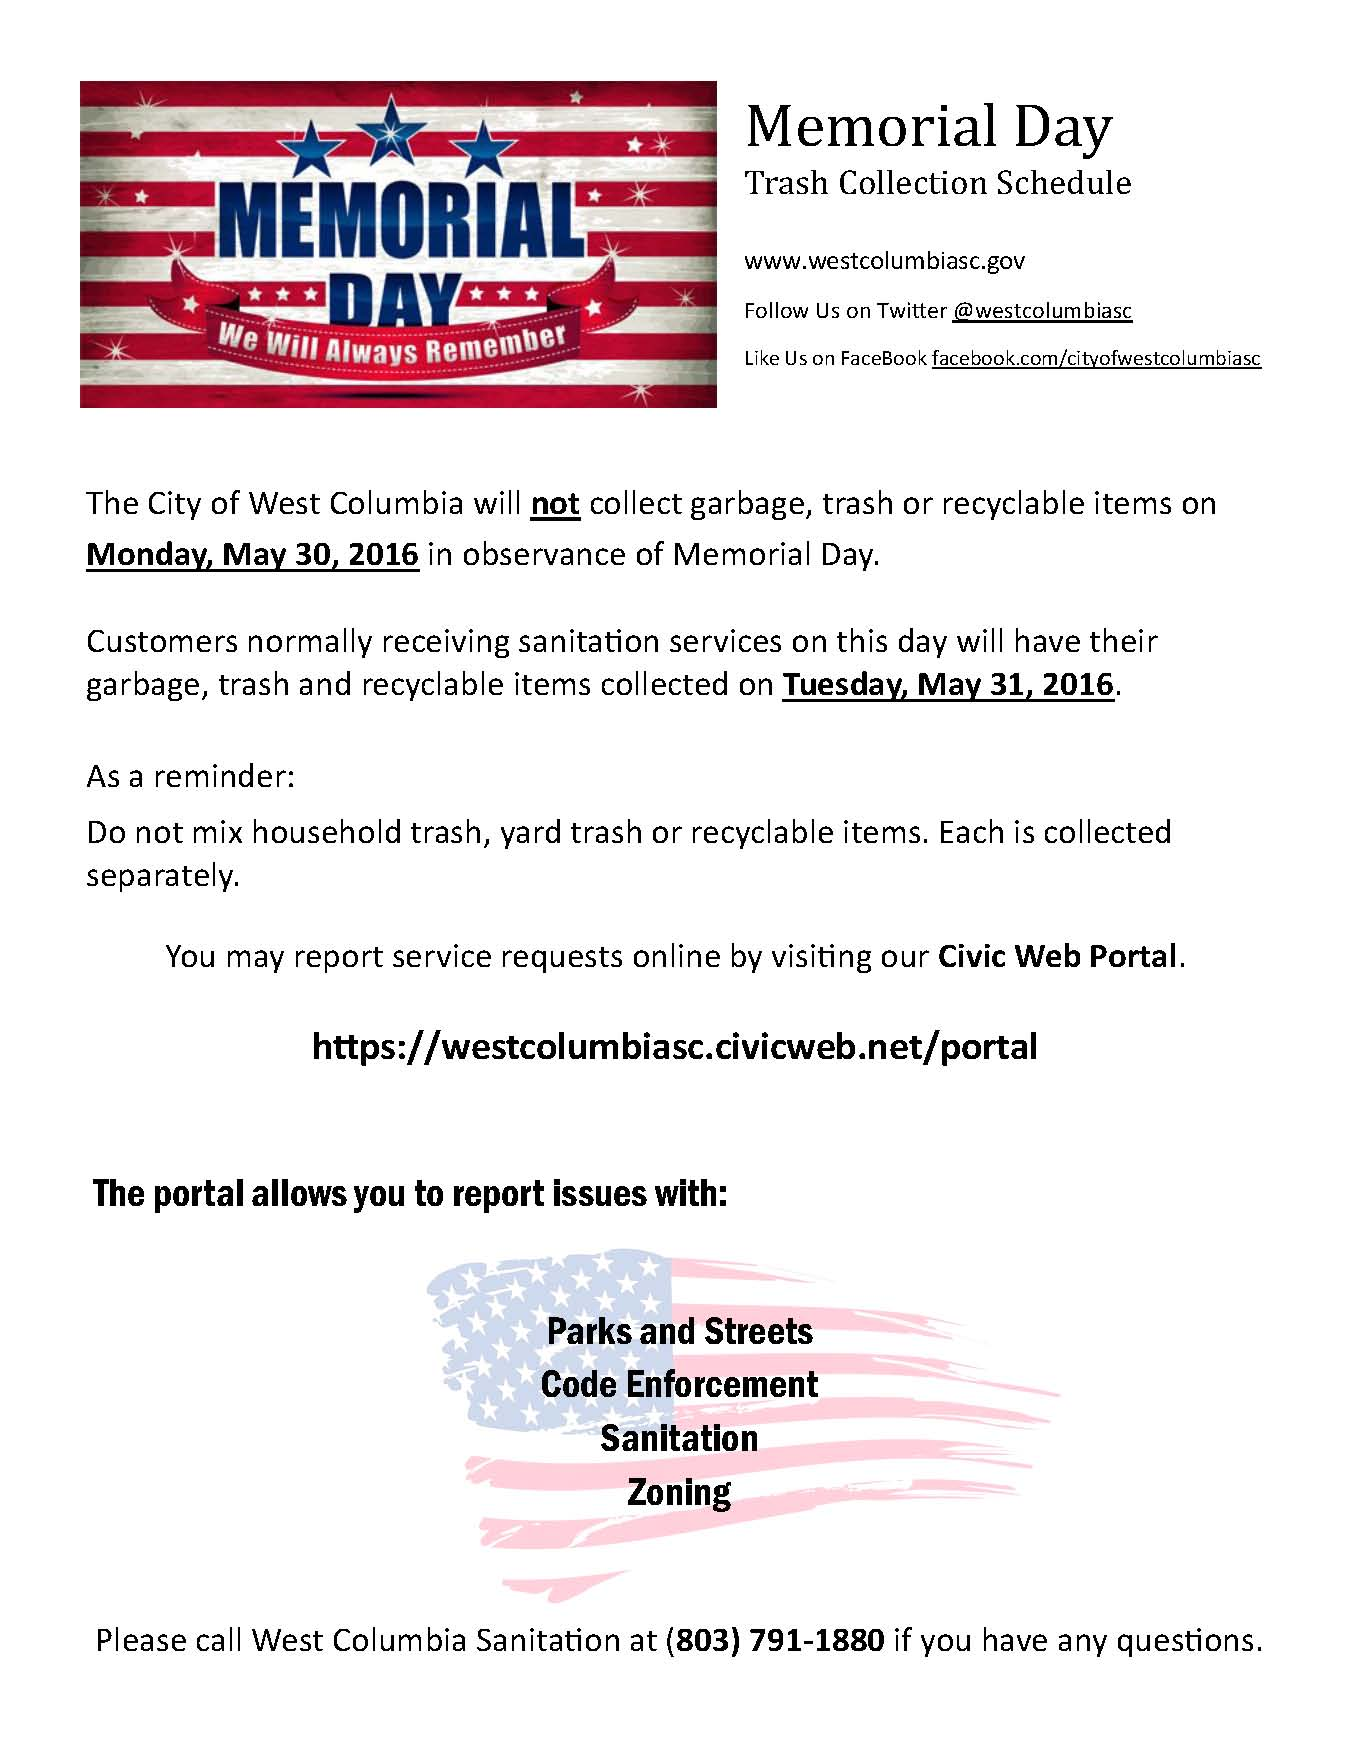 Memorial Day Sanitation  Closing flyers 2016_Page_2